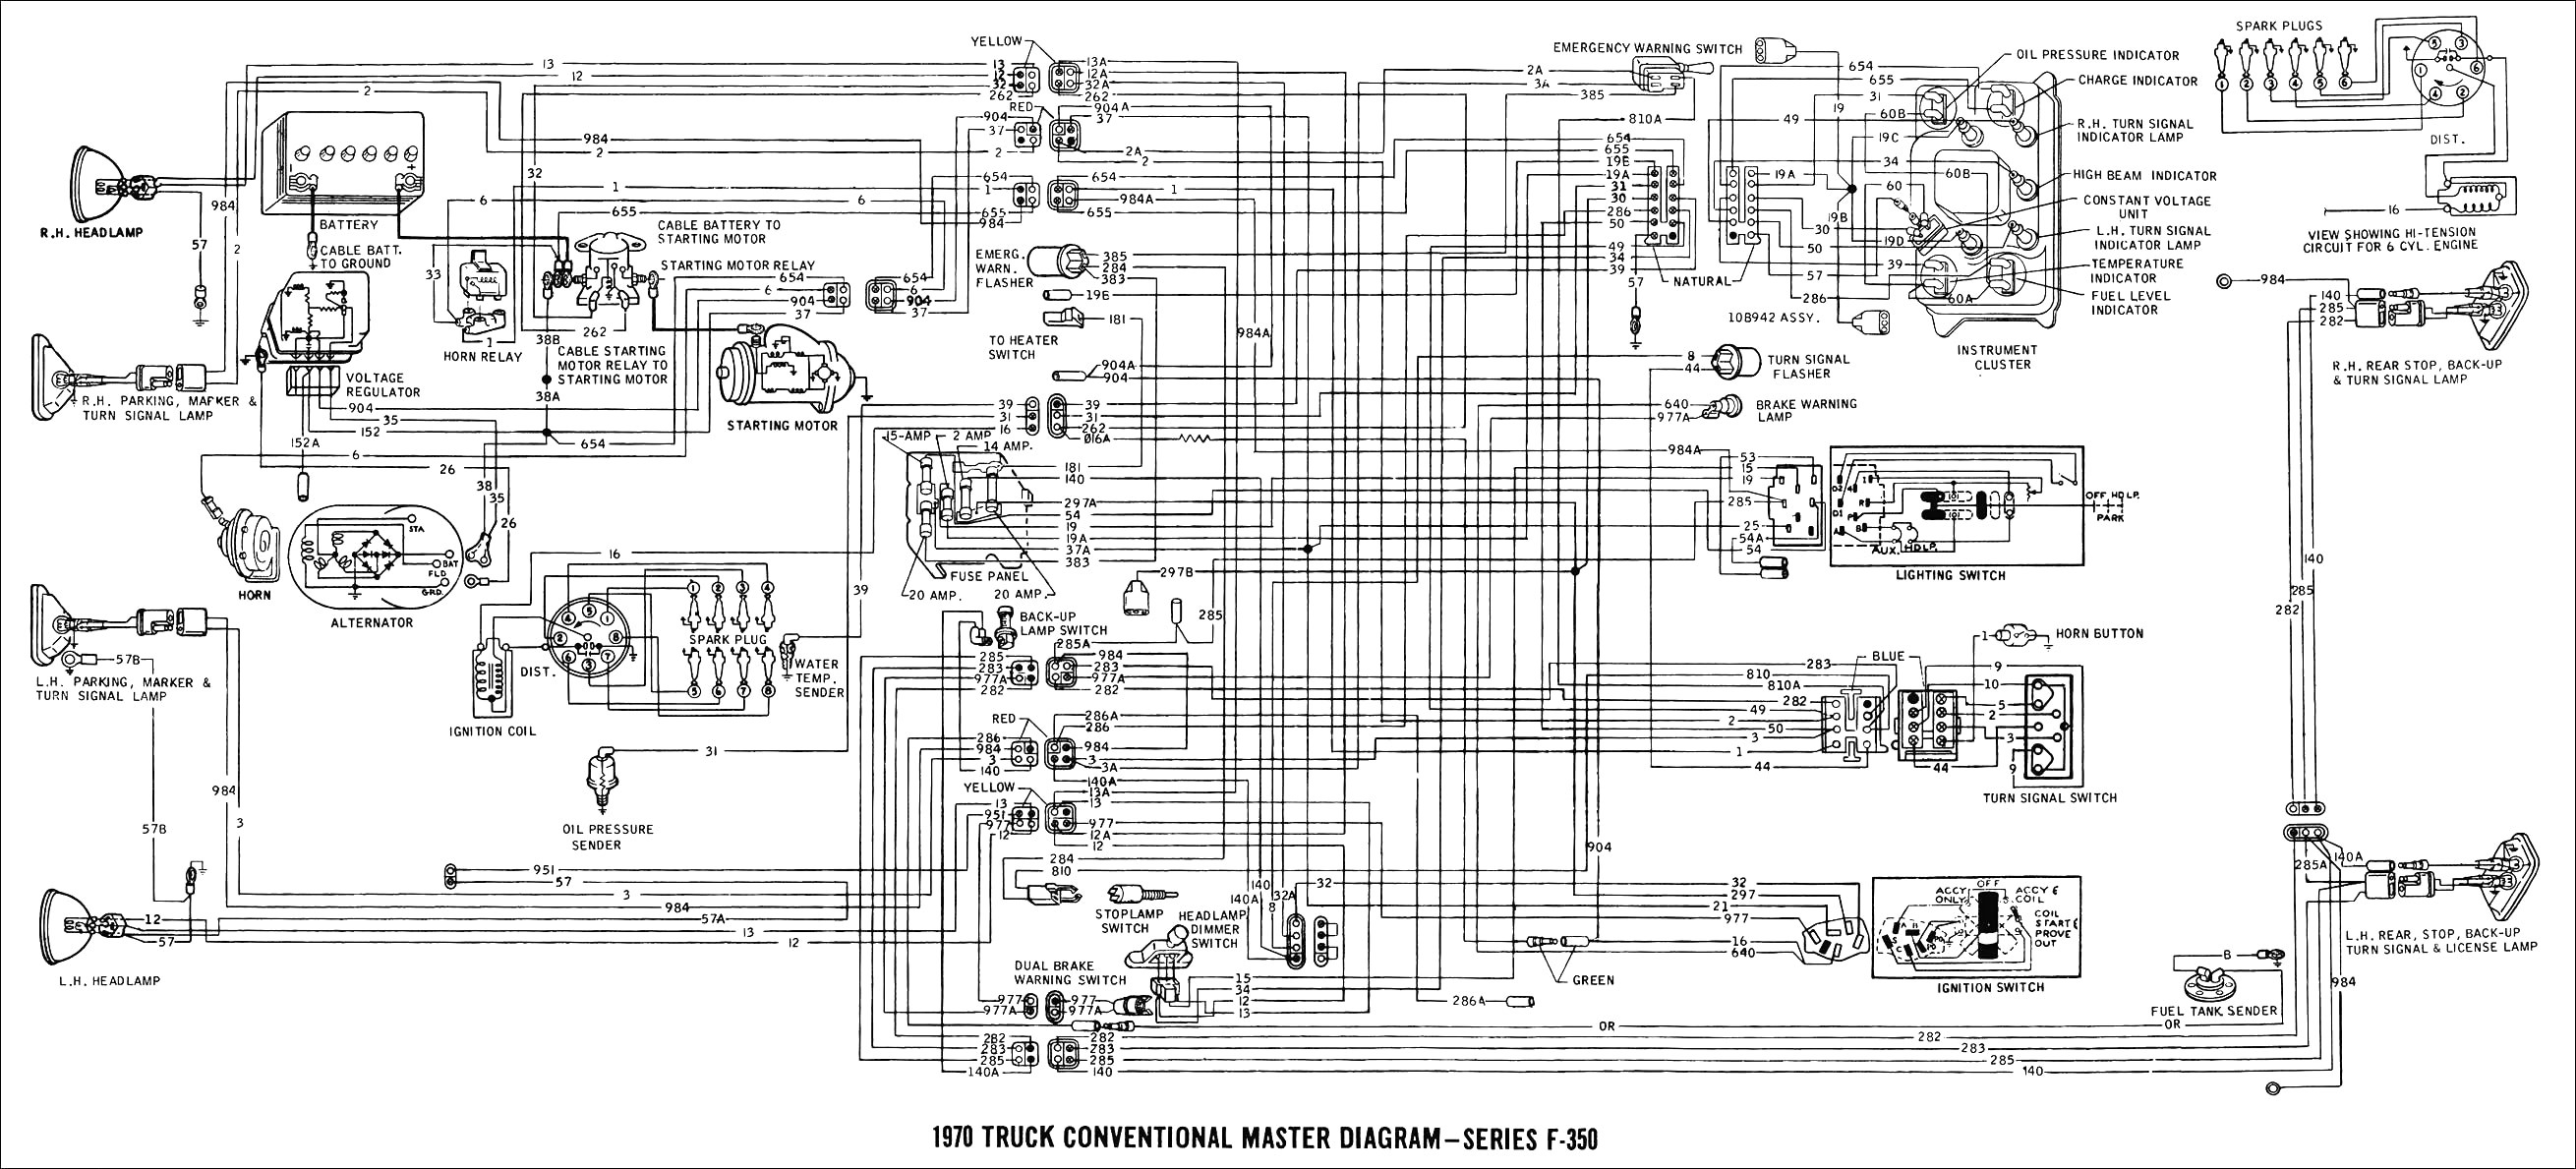 1994 ford Ranger Wiring Diagram I Need the Wiring Diagram for A 1996 ford Explorer Radio 1997 Also Of 1994 ford Ranger Wiring Diagram